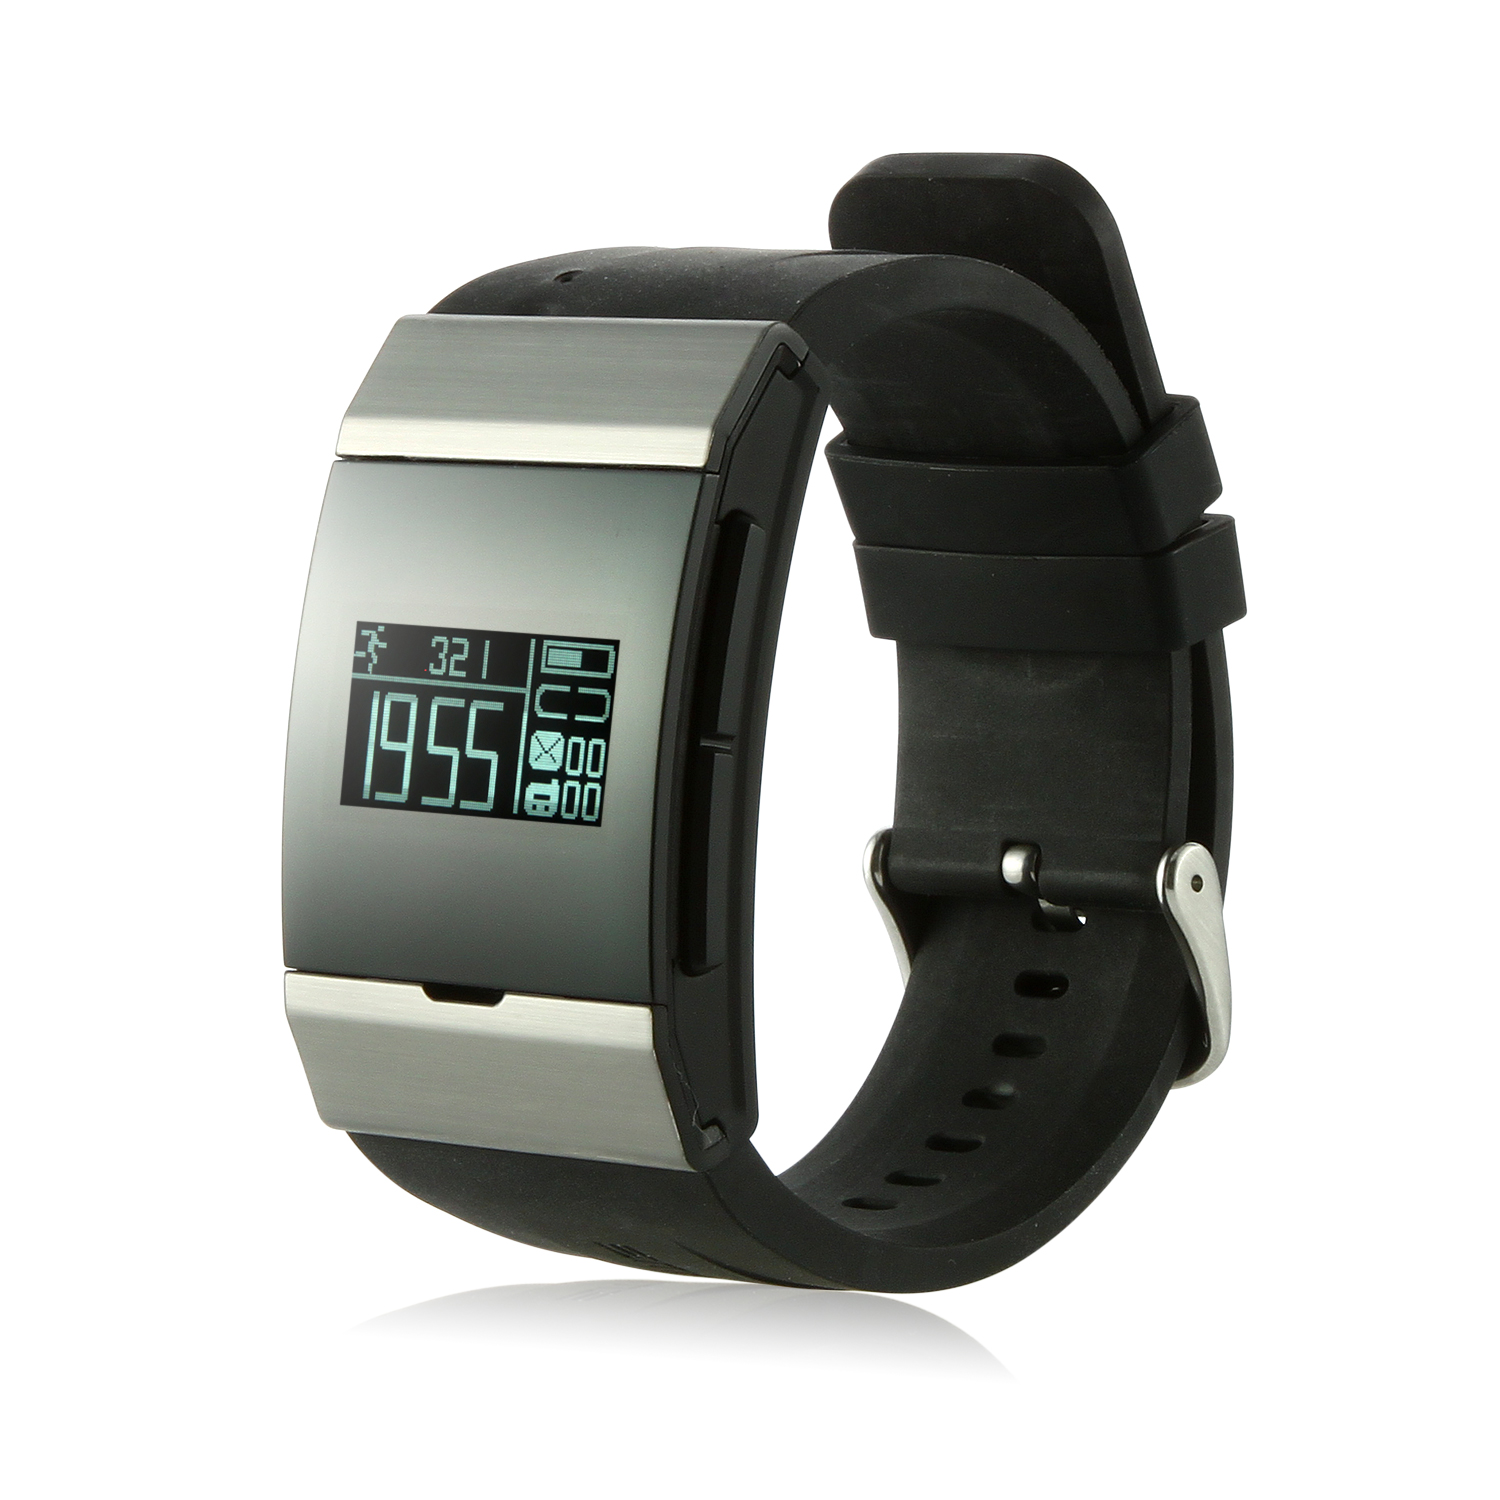 IL06 Smart Bluetooth Watch CSR Intercom Answer Pedometer for IOS/Android/Windows Black